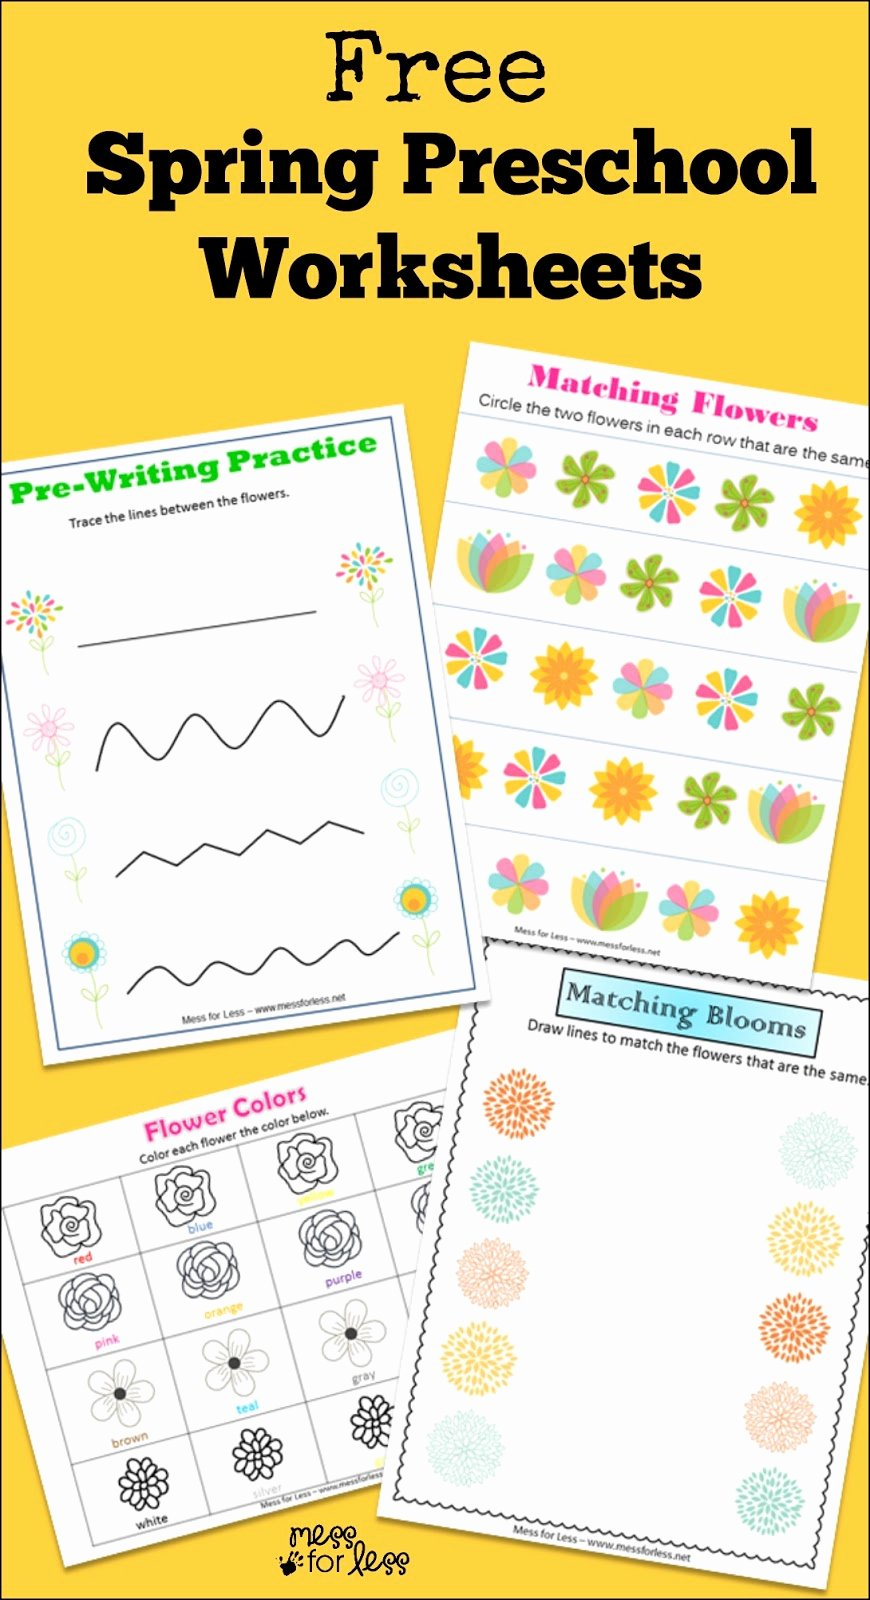 Spring Printable Worksheets for Preschoolers Fresh Free Spring Preschool Worksheets Mess for Less